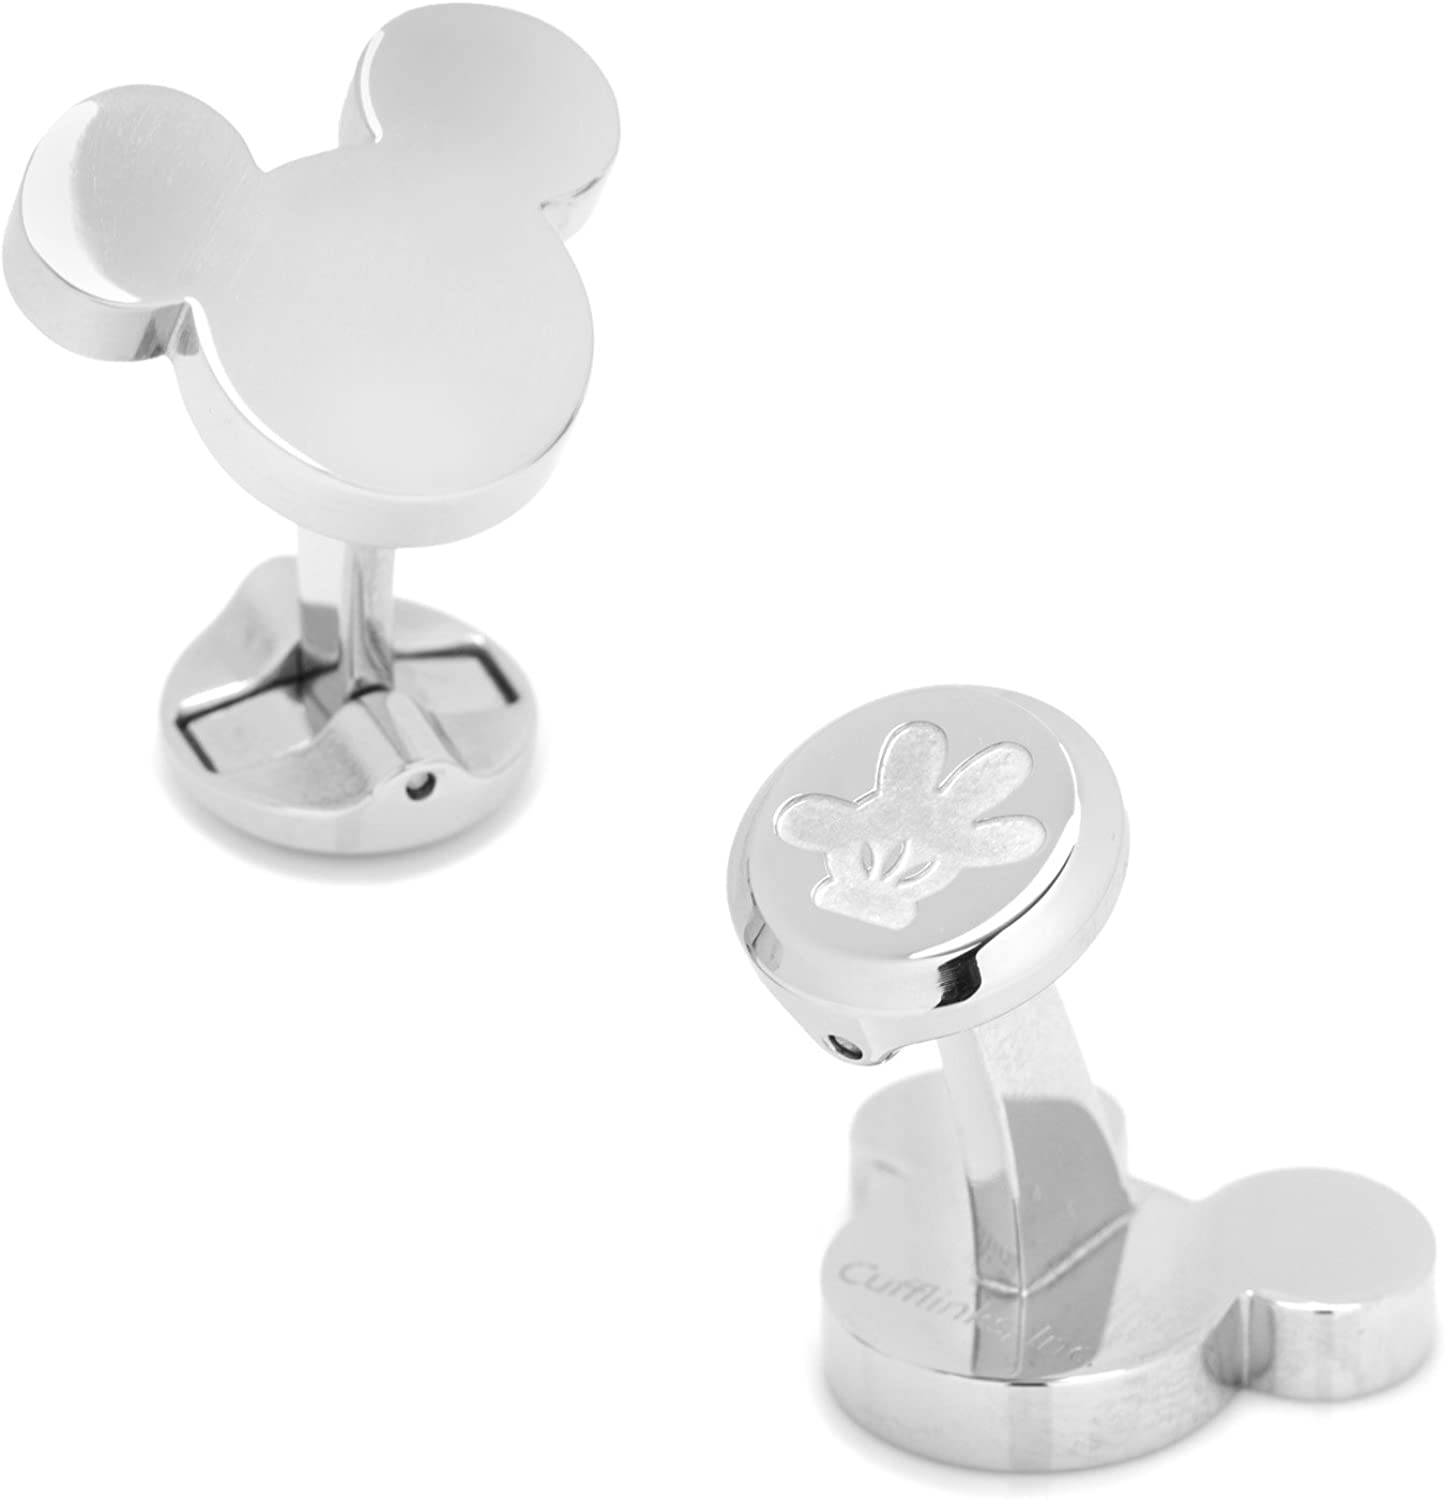 Stainless Steel Mickey Mouse Silhouette Cufflinks